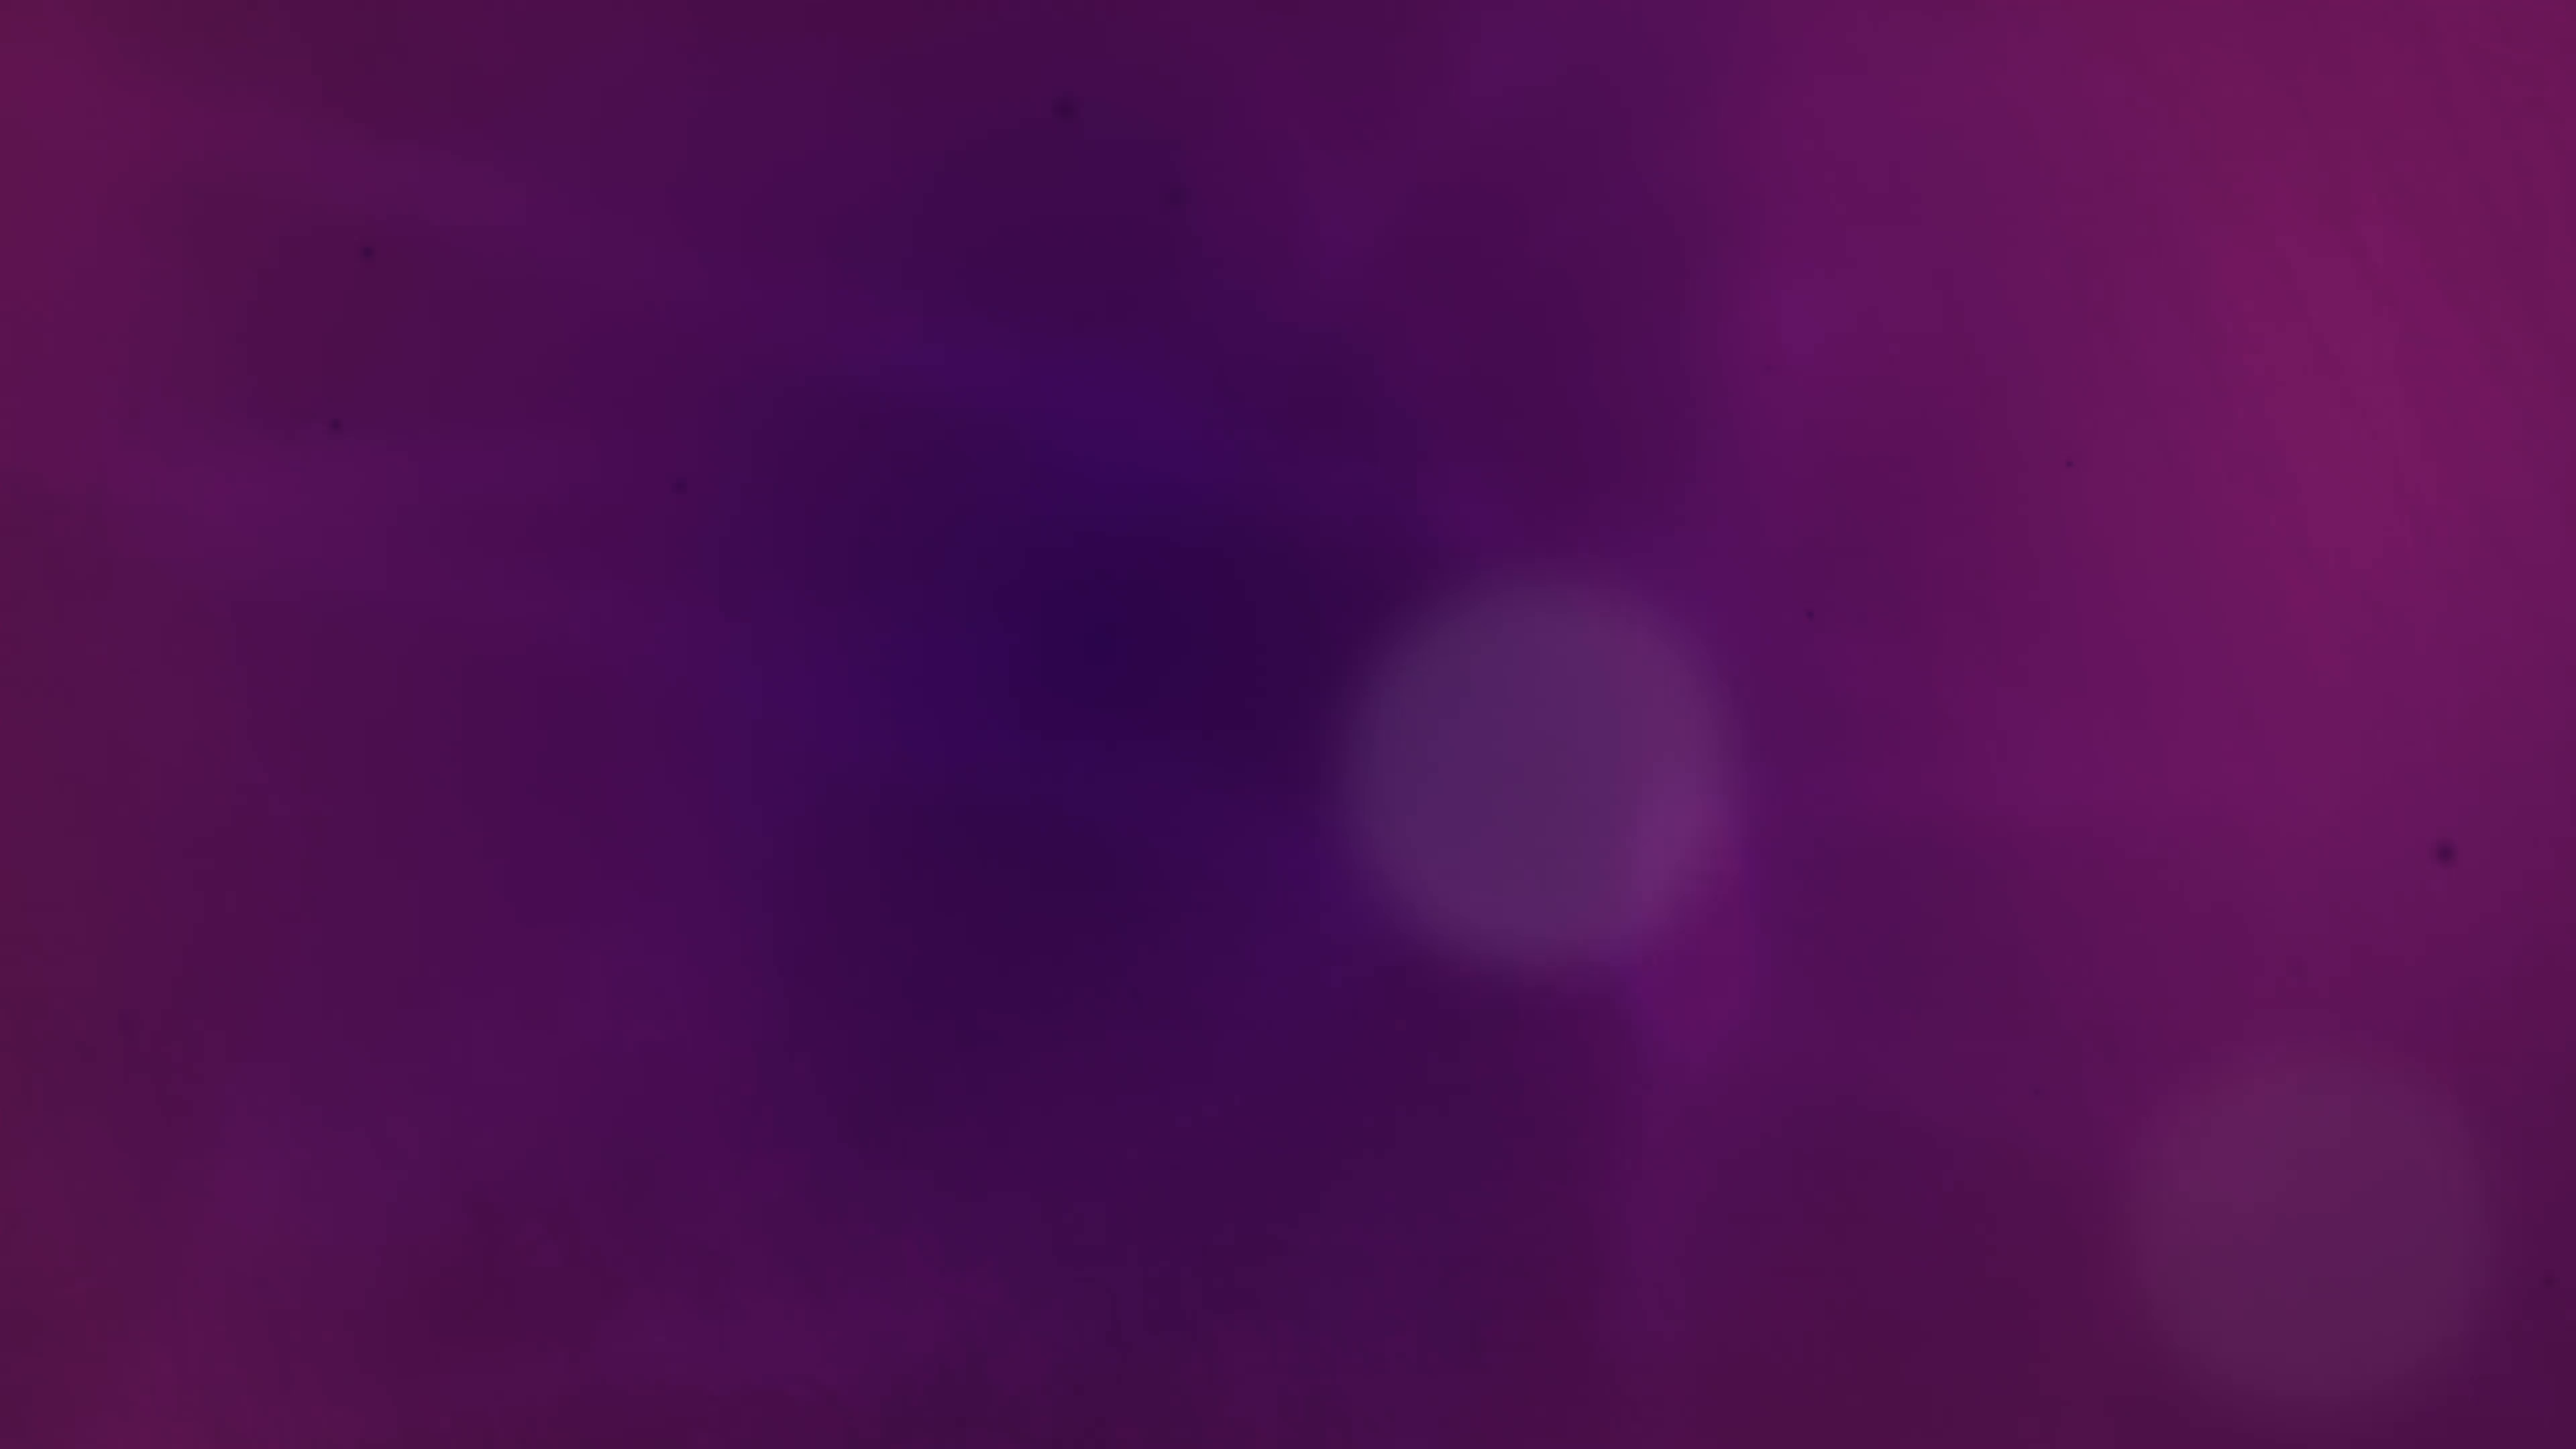 4K abstract purple background animation - loop 30fps Motion ...